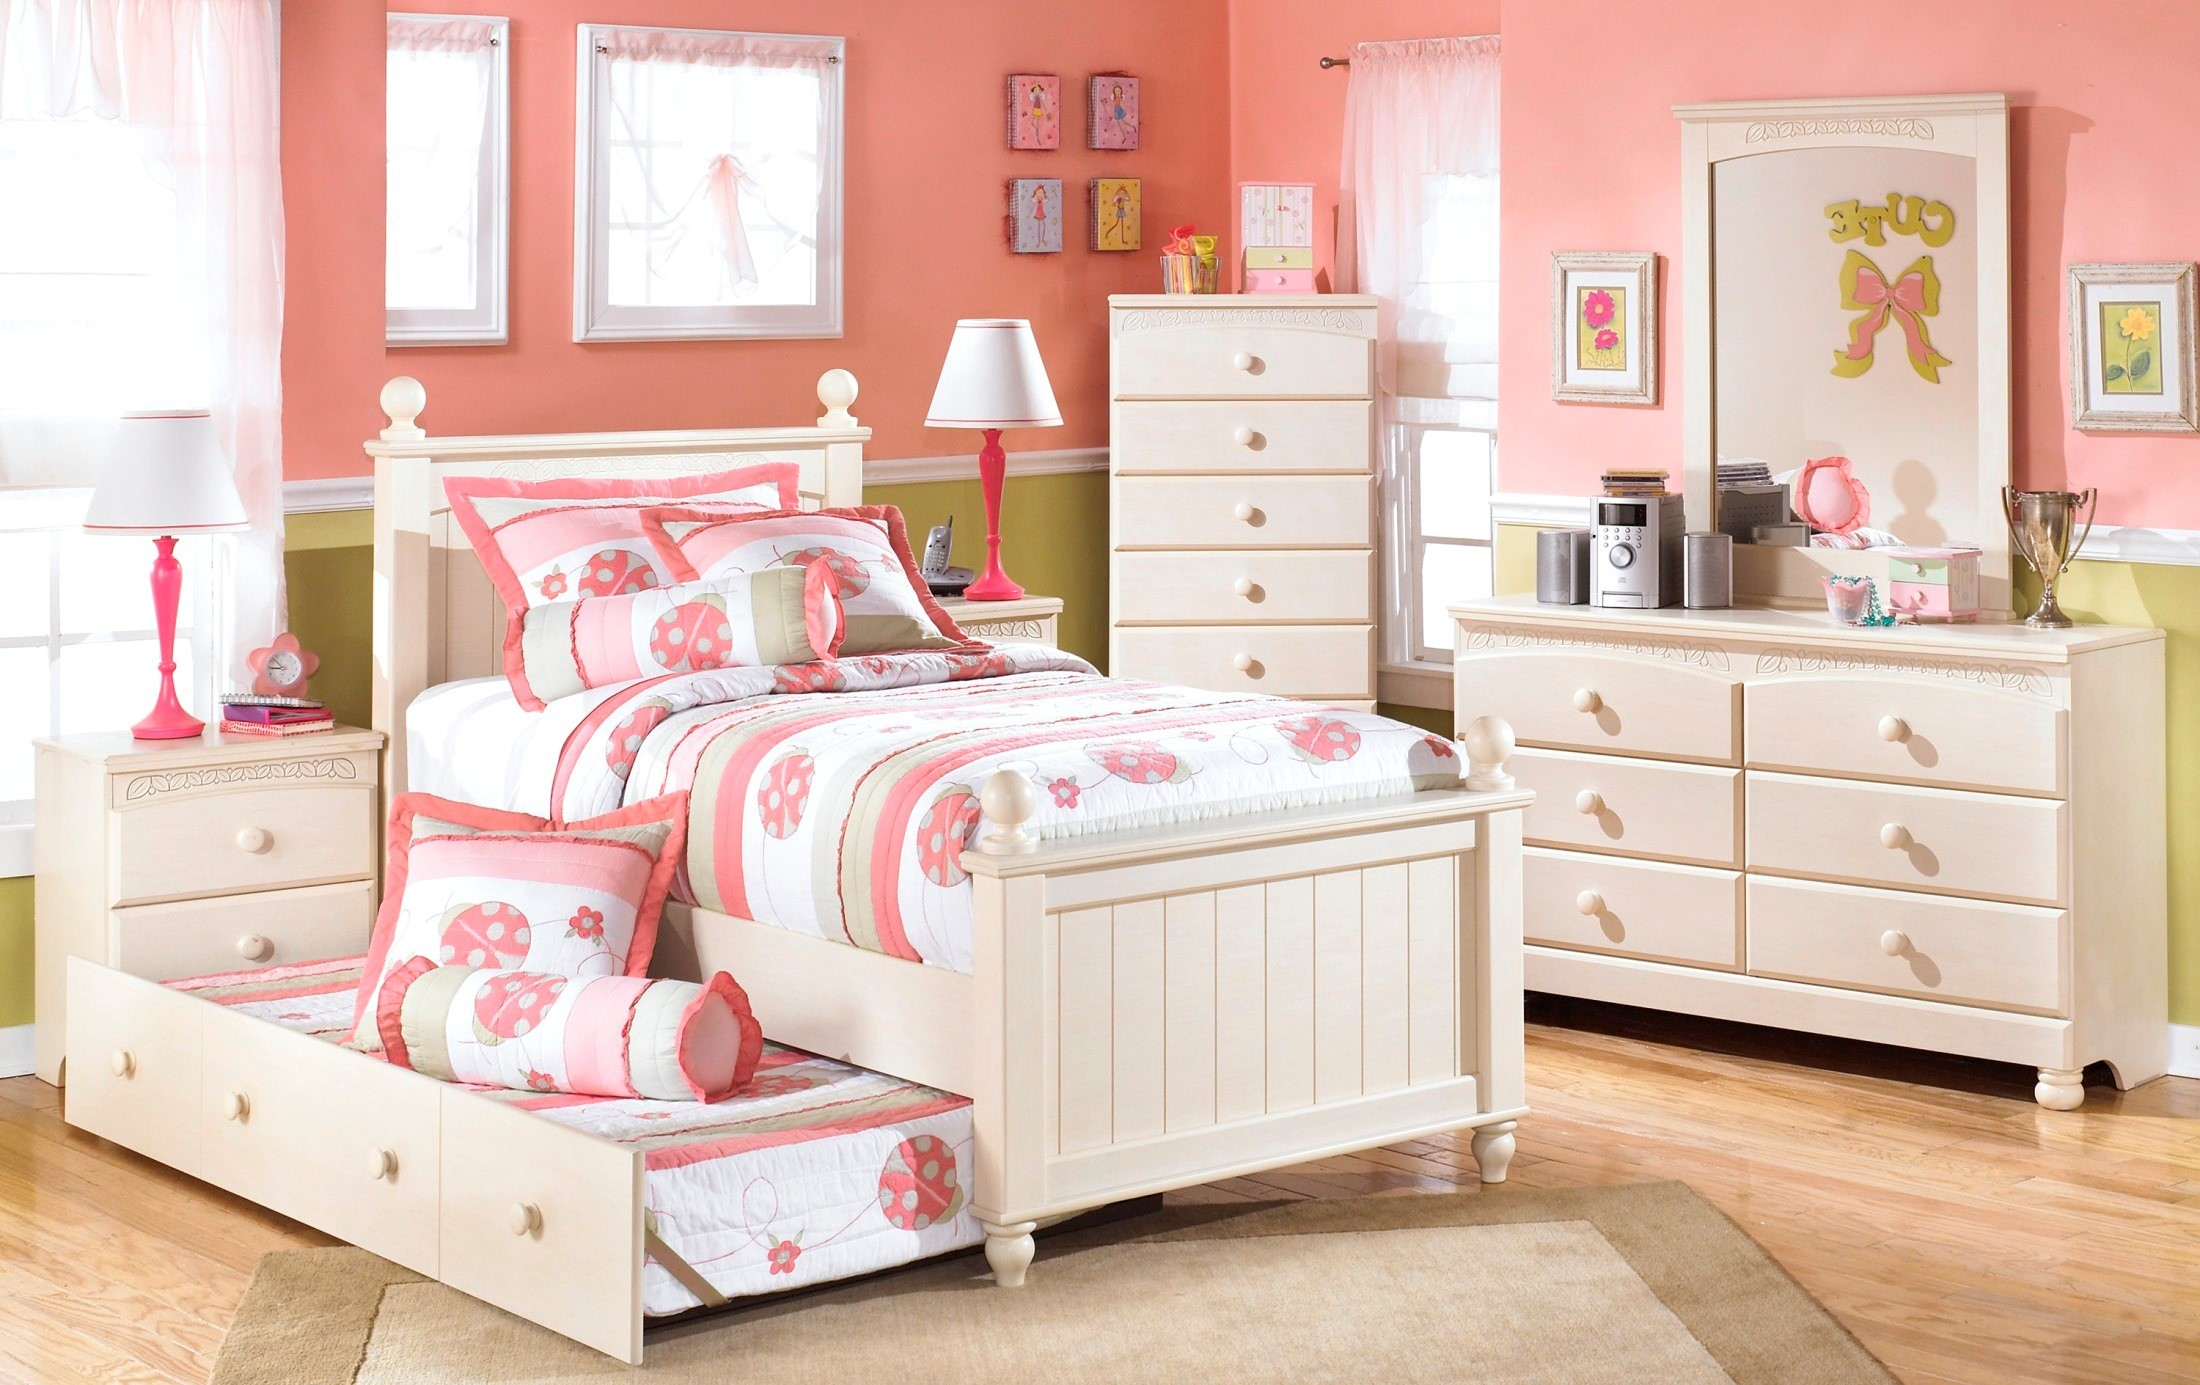 Cottage retreat youth poster trundle bedroom set from for Cottage retreat ii